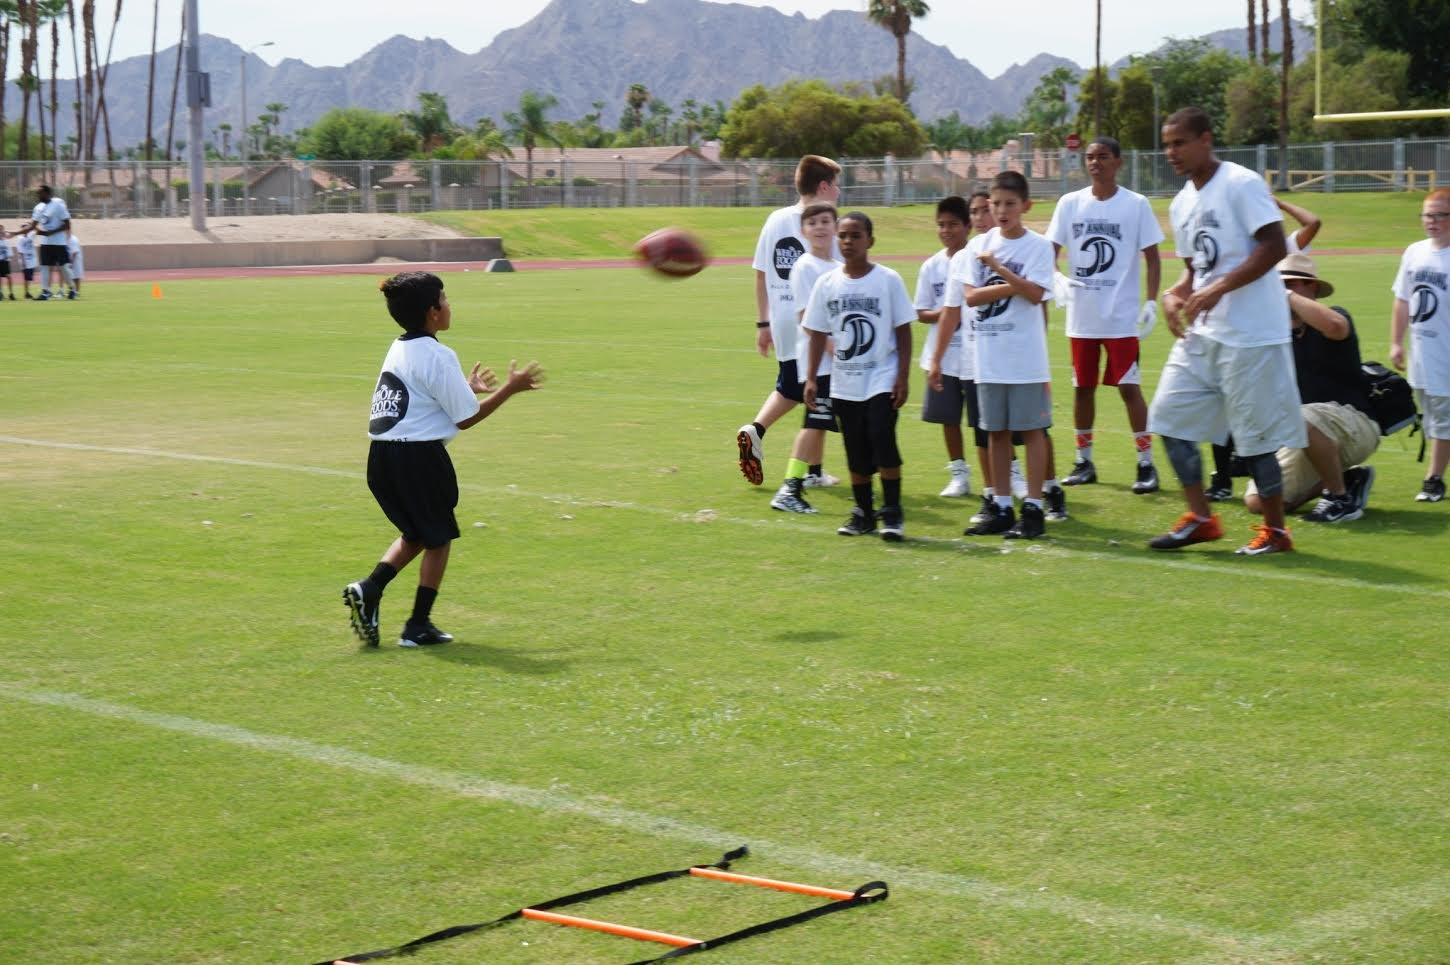 NFL and Palm Desert Alumni Hold Free Youth Football Camp  Palm Springs News, Weather, Traffic